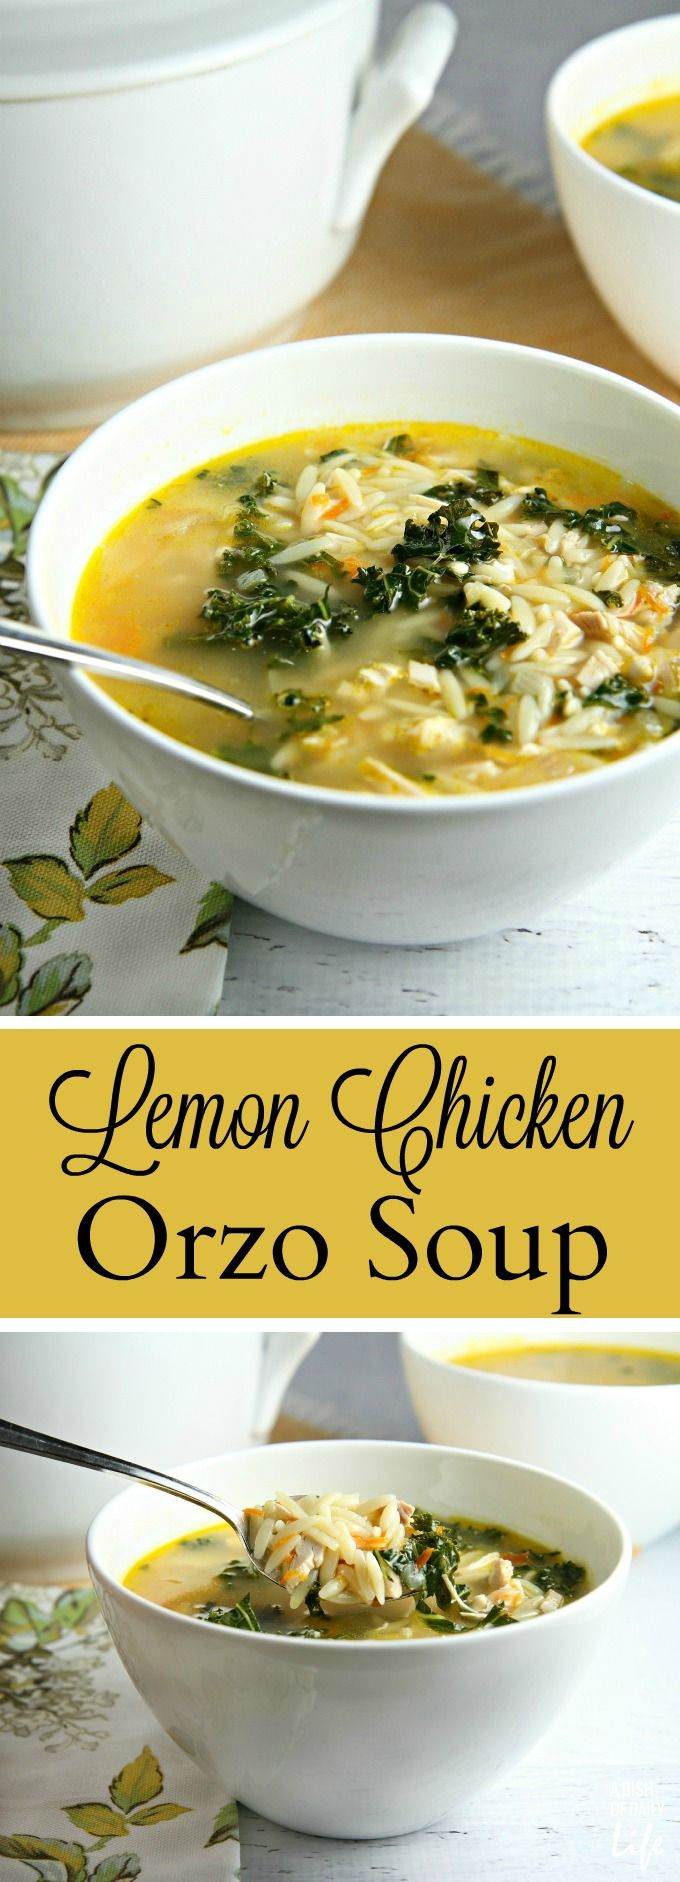 This delicious Lemon Chicken Orzo Soup recipe is the perfect alternative to the traditional chicken soup. Packed with chicken, orzo, and kale, and a twist of lemon, this fast and easy soup (30 min) will warm your soul on a chilly day!                                                                                                                                                                                 More